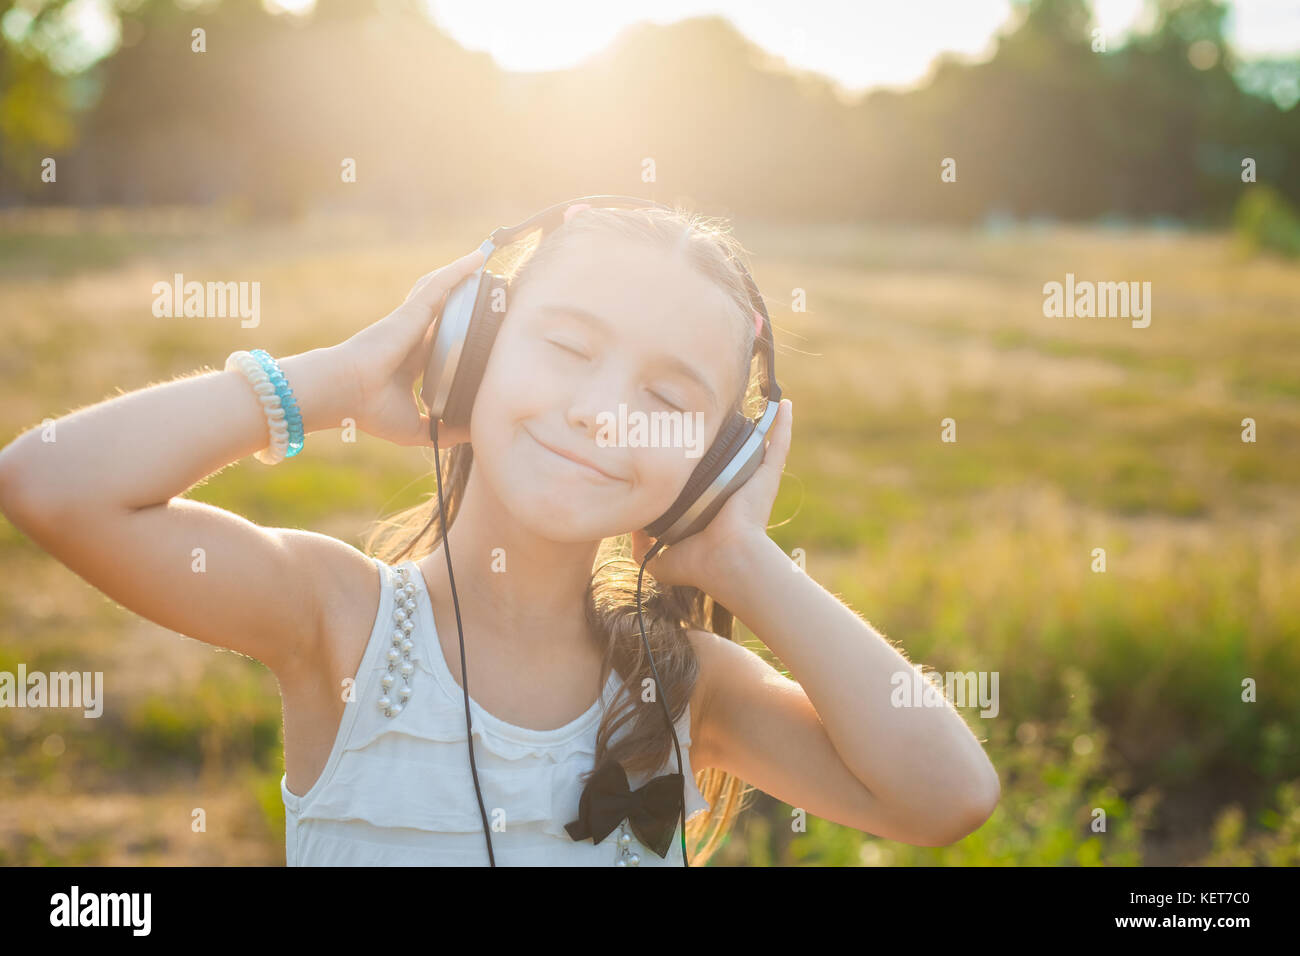 Funny girl listening music with headphones - Stock Image